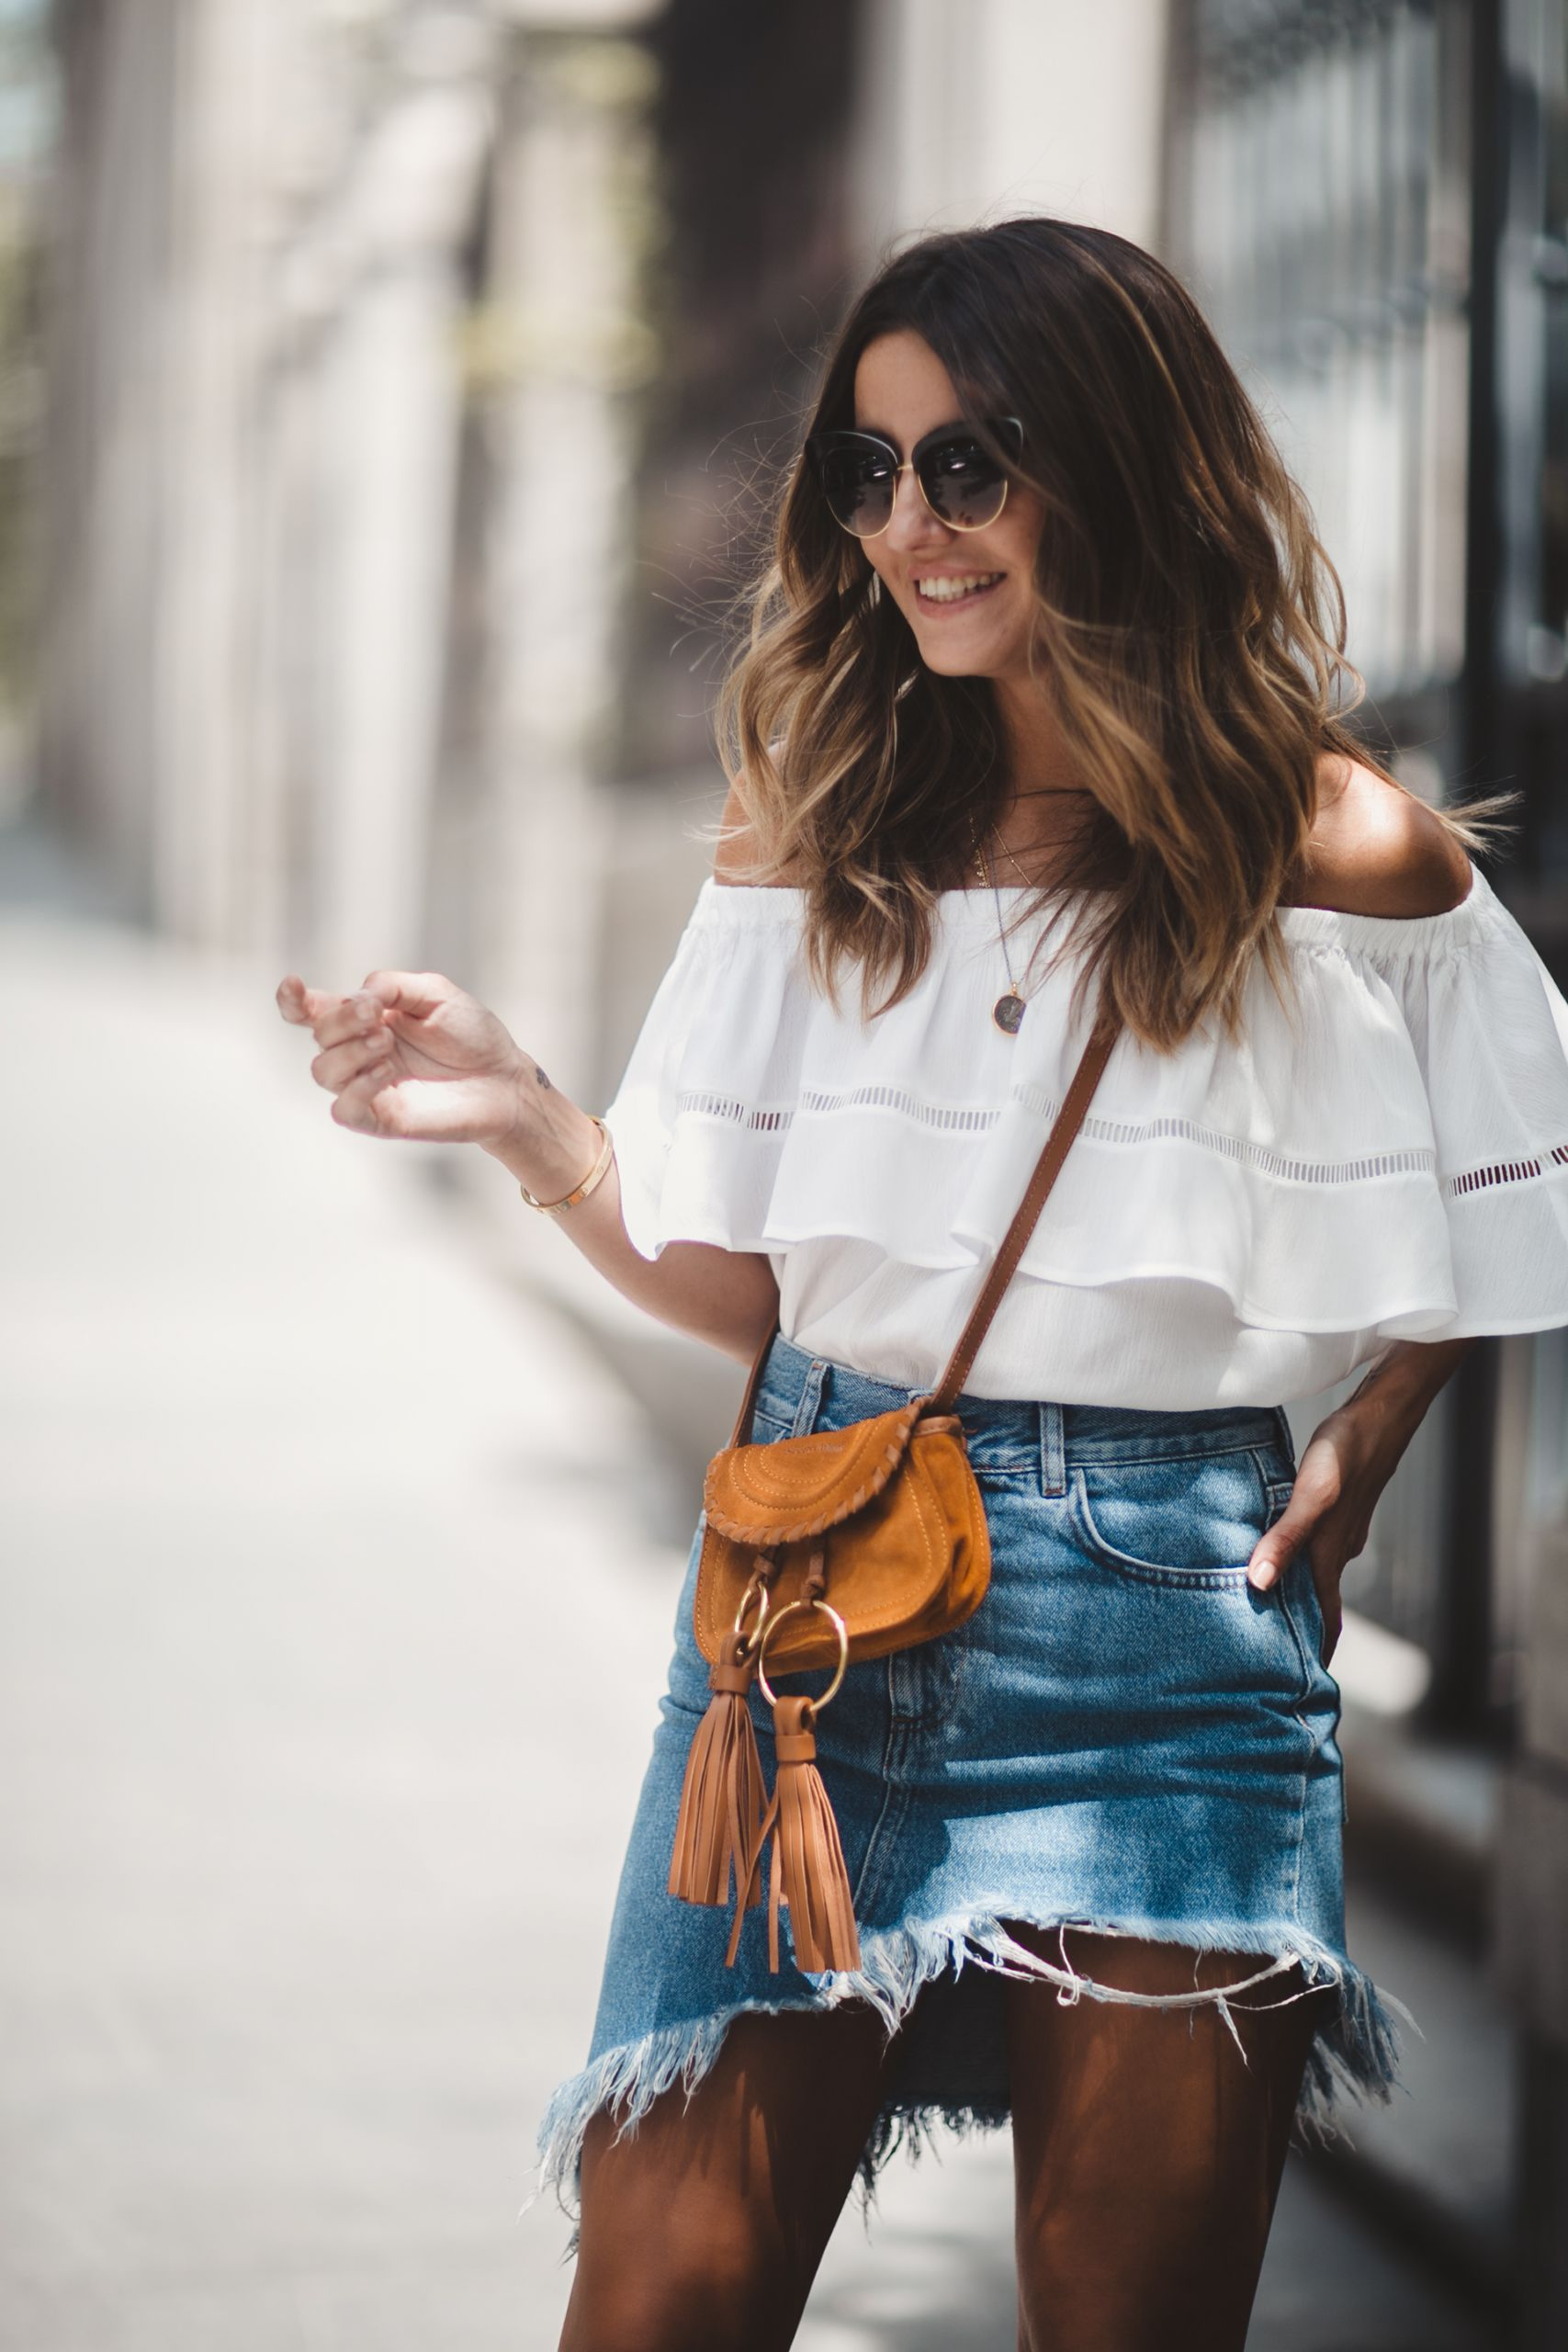 Steal Her Style: Asymmetrical Denim Skirt by Lovely Pepa